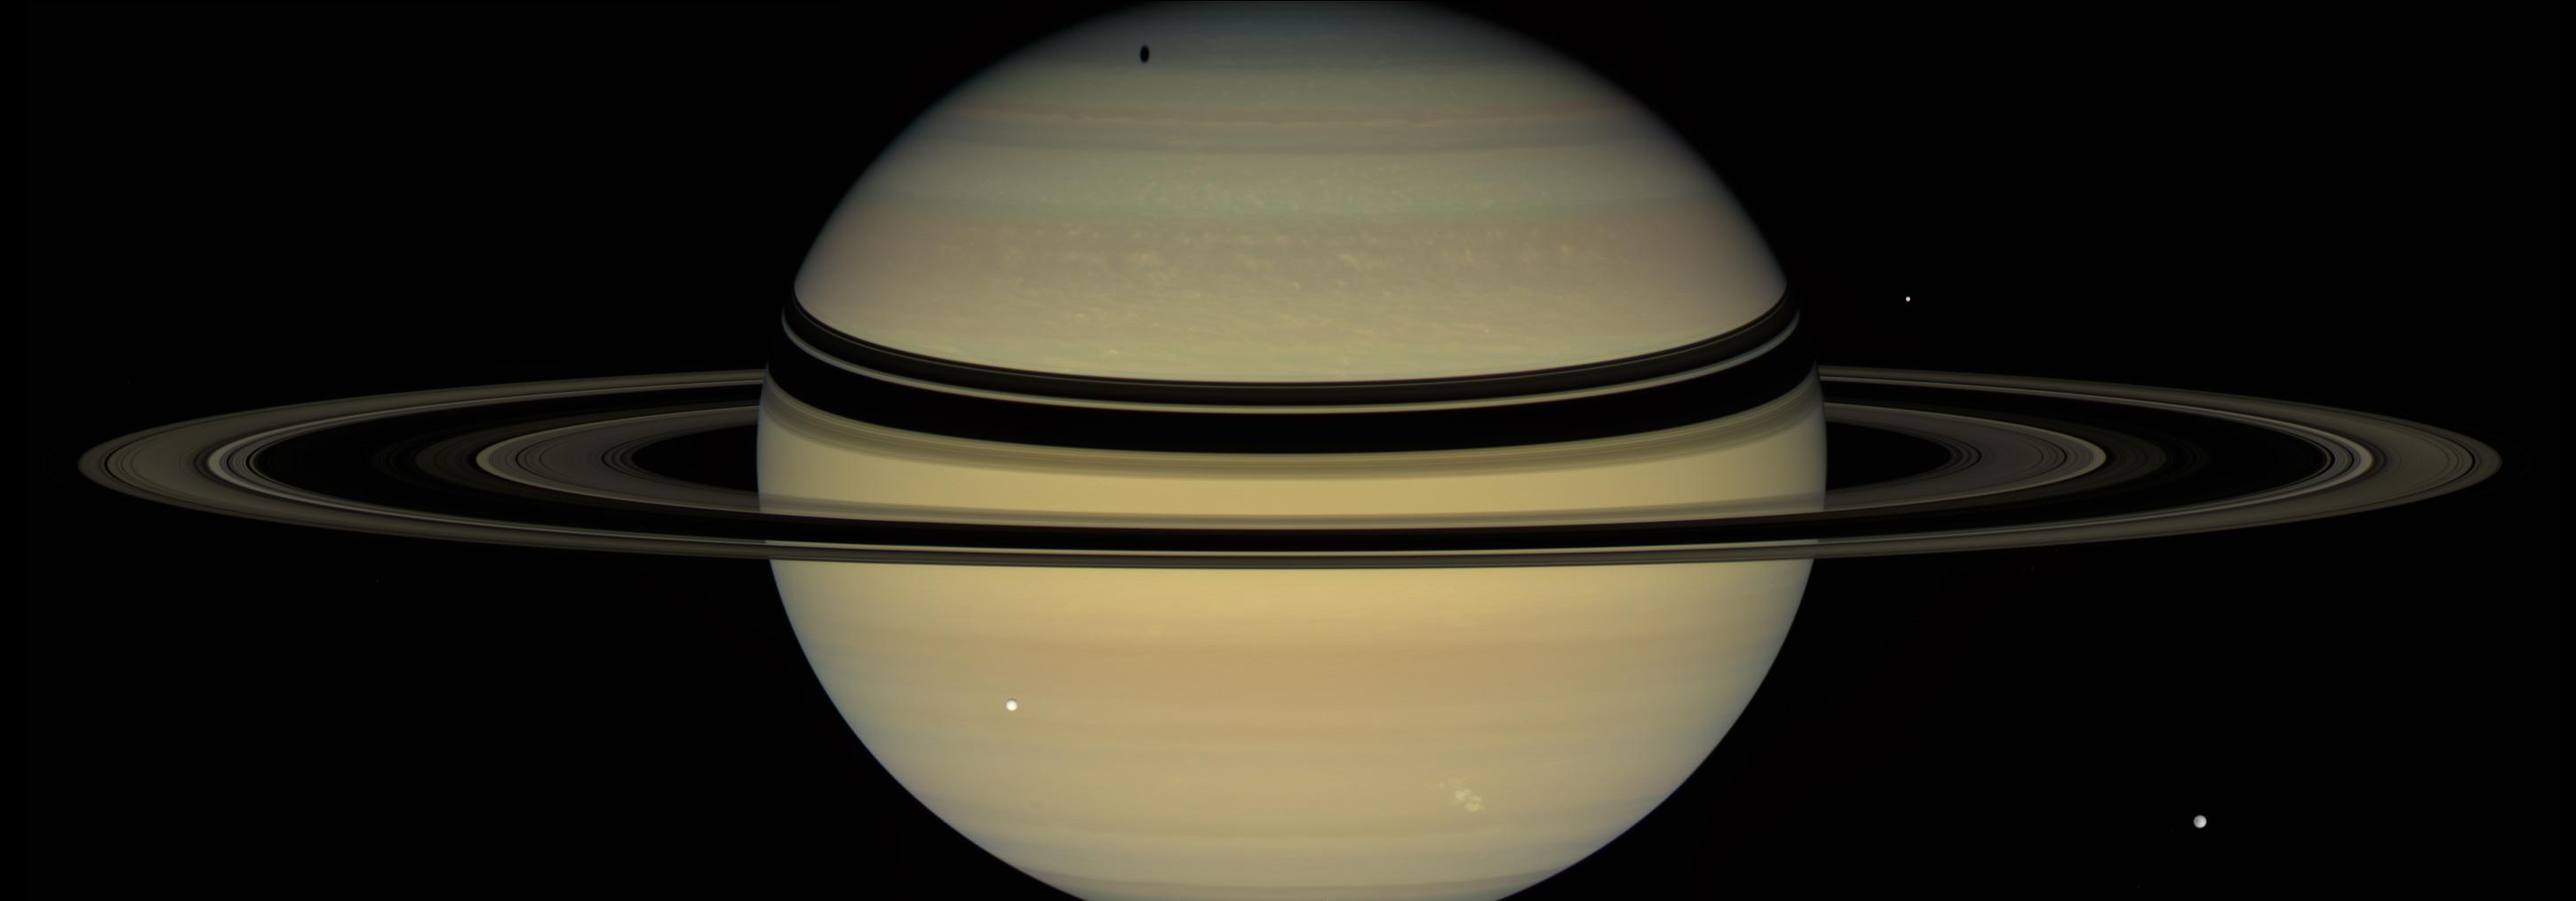 Saturn - A Stage for Shadows